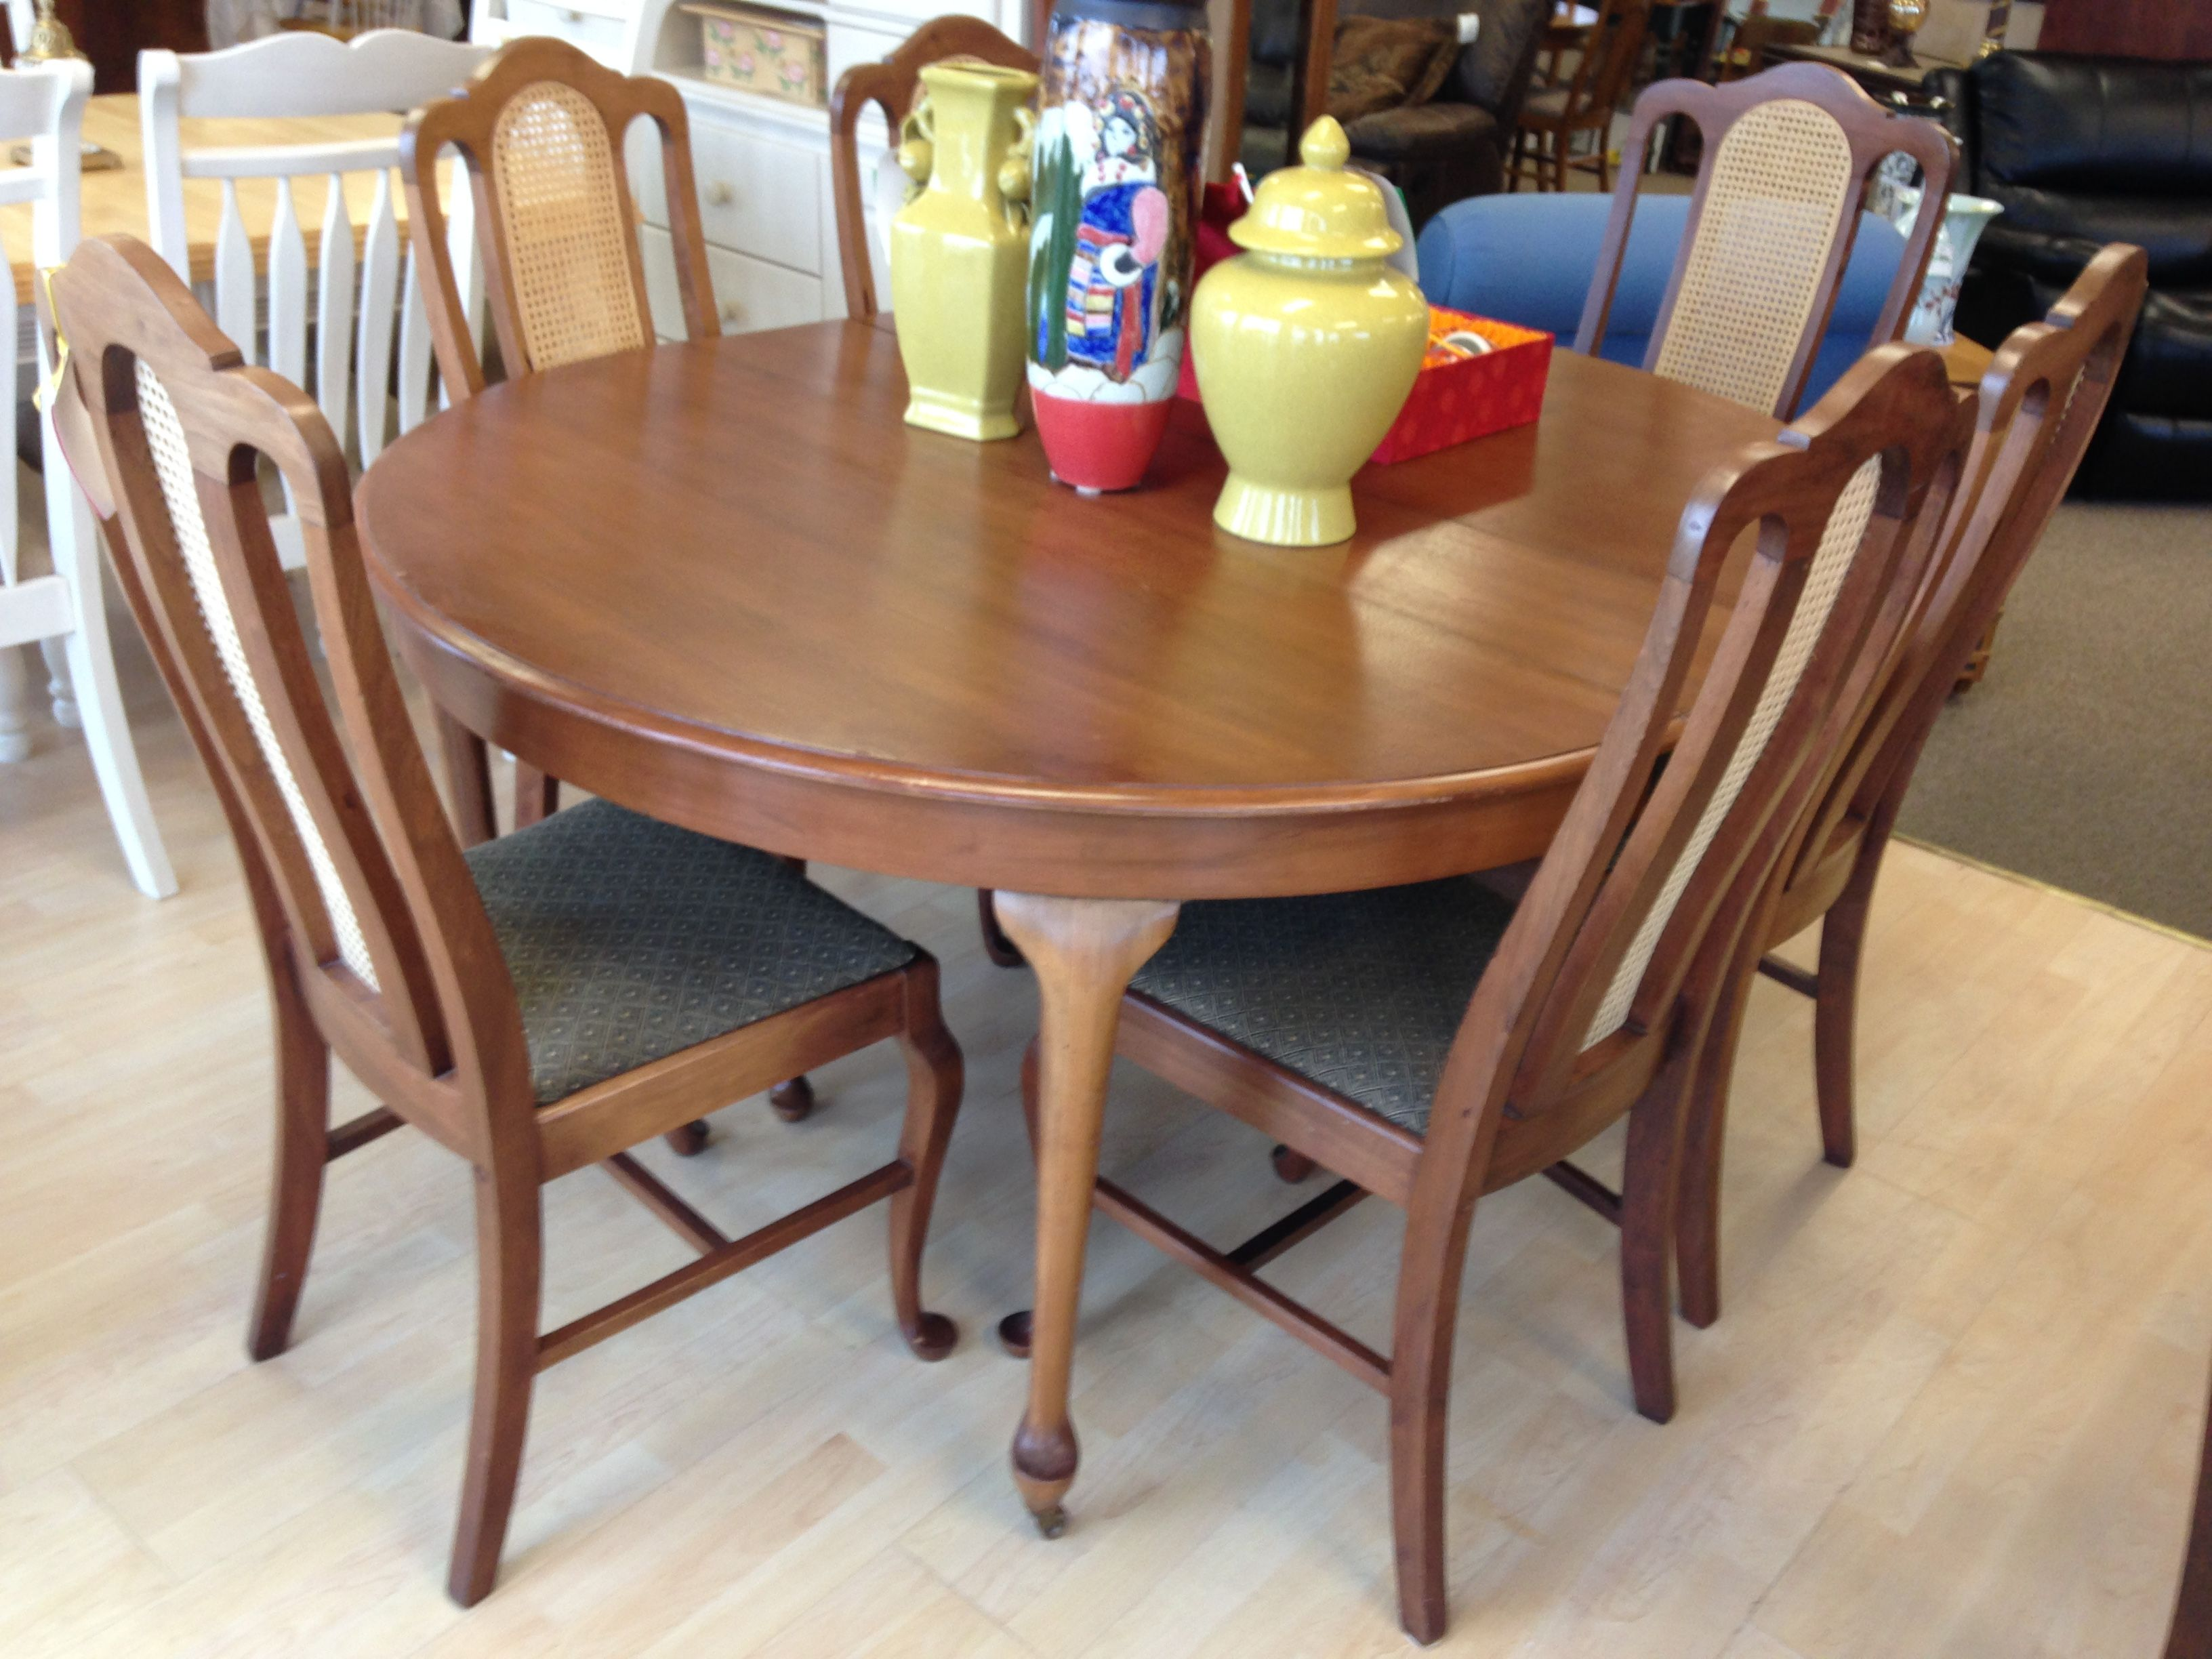 Vintage walnut table with six chairs and two leaves is on wheels